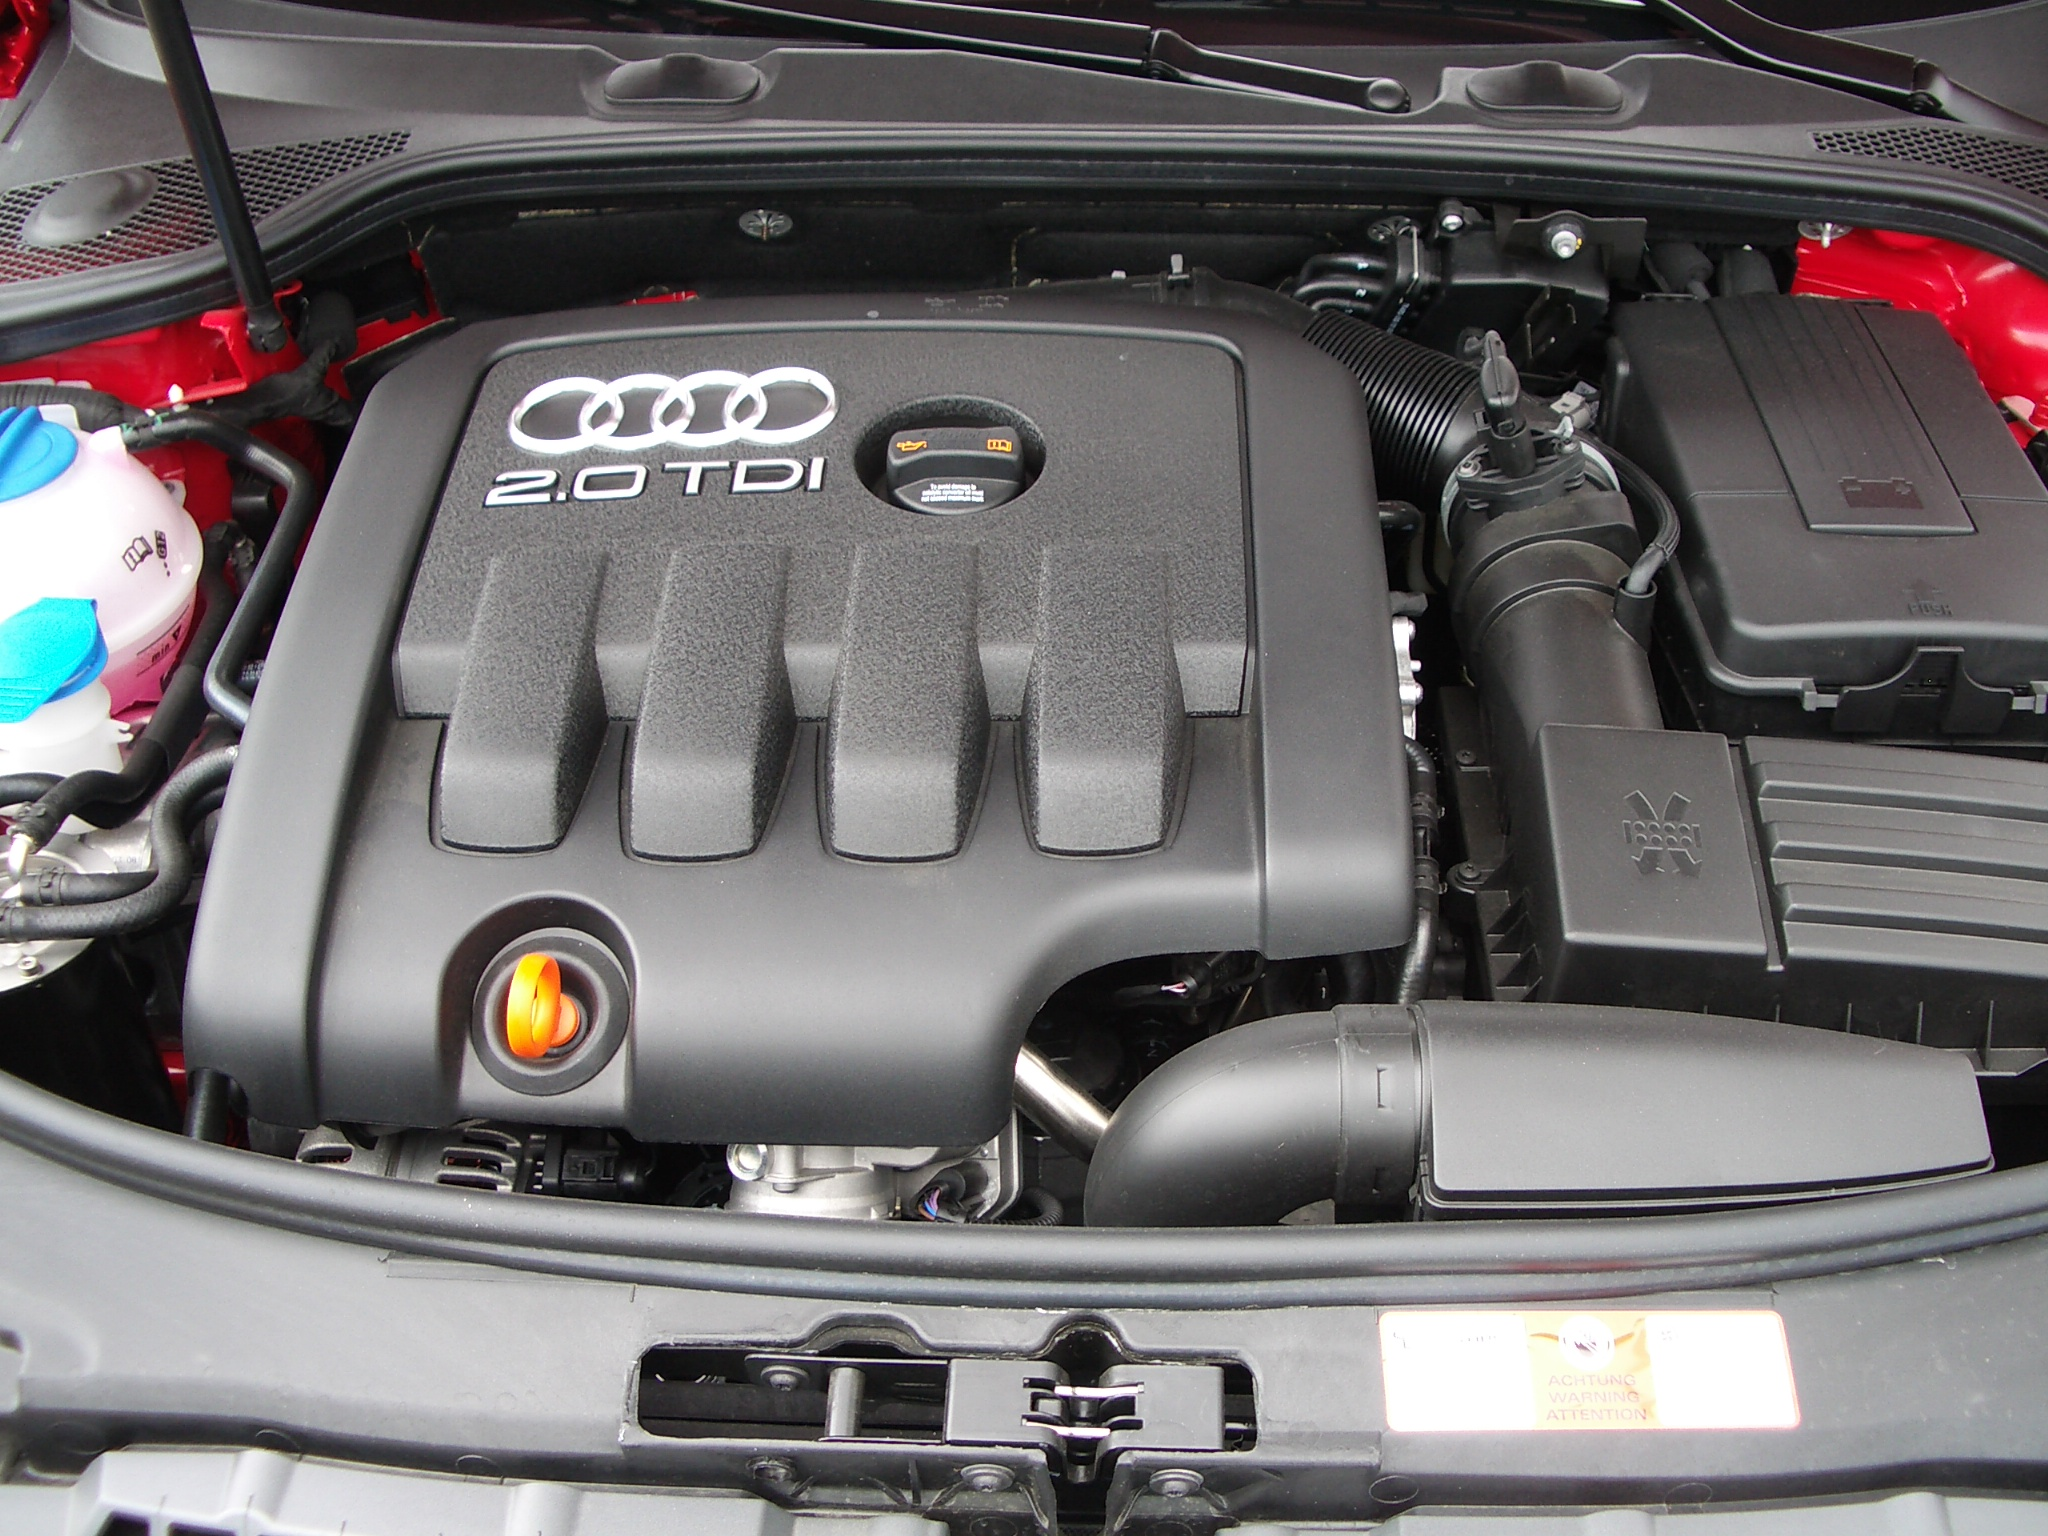 What Is the Purpose of the Engine Cover